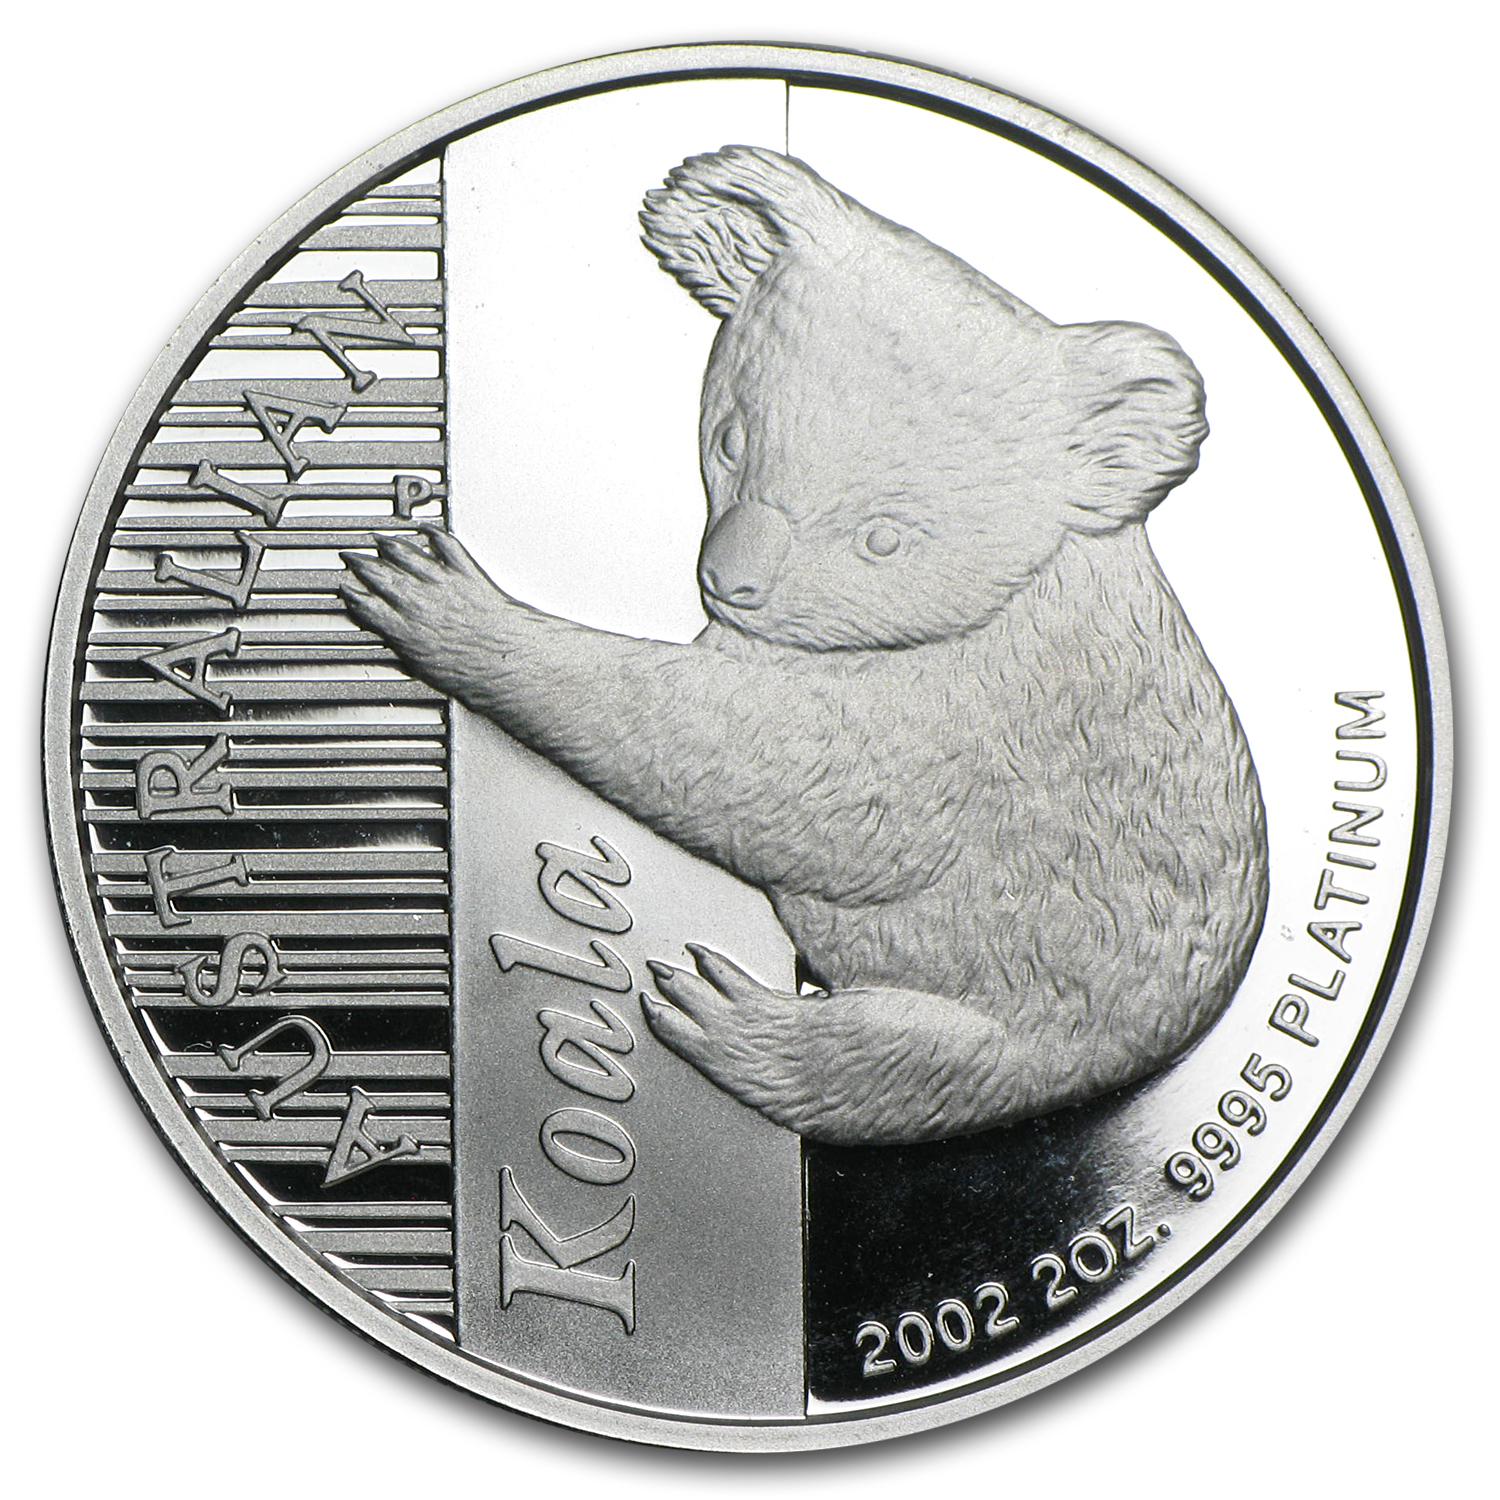 2002 2 oz Australian Platinum Koala (Proof, w/ Box and CoA)